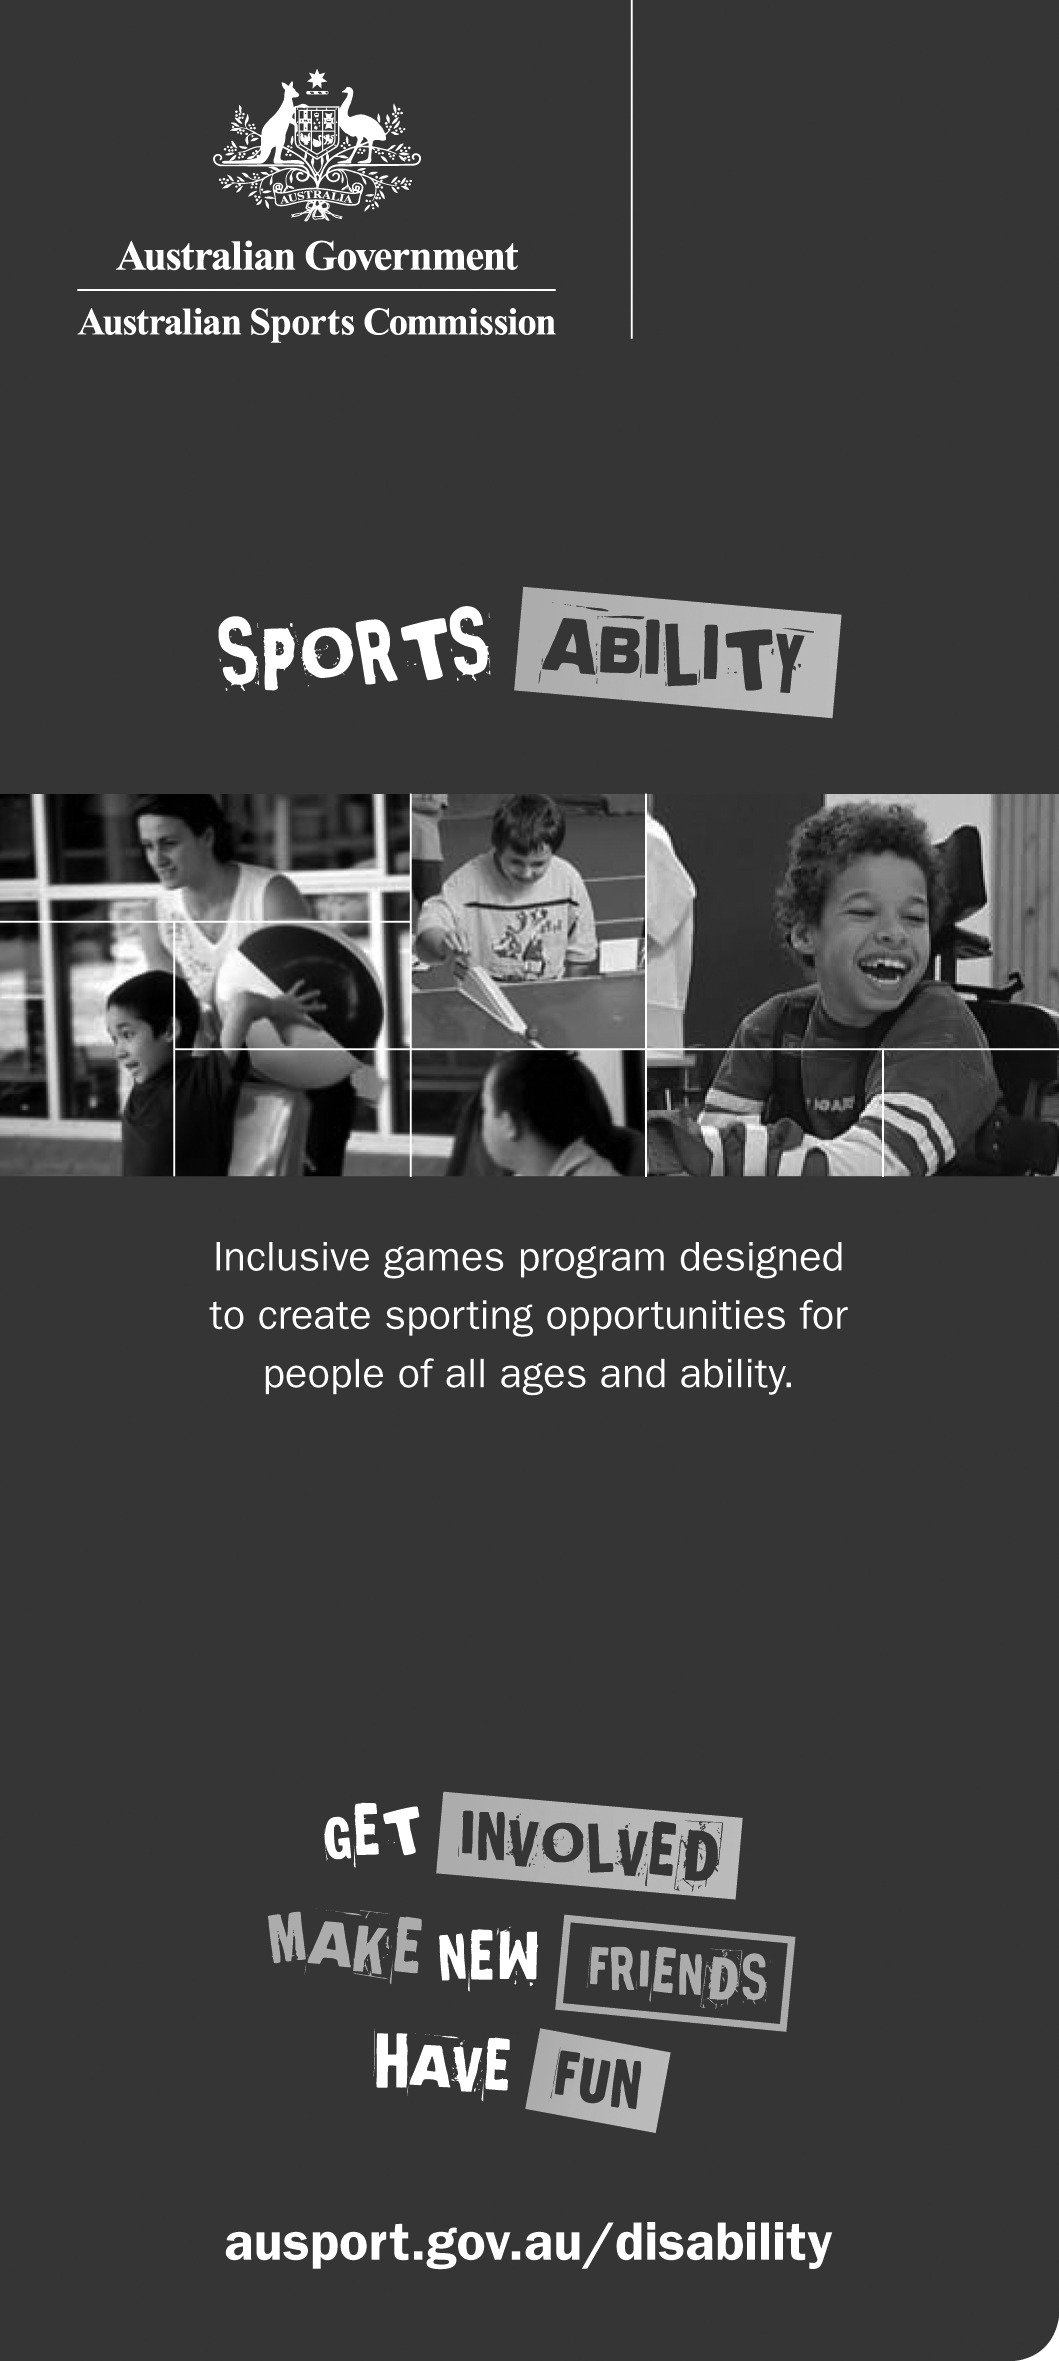 Sports ability: Indigenous sports ability activity cards